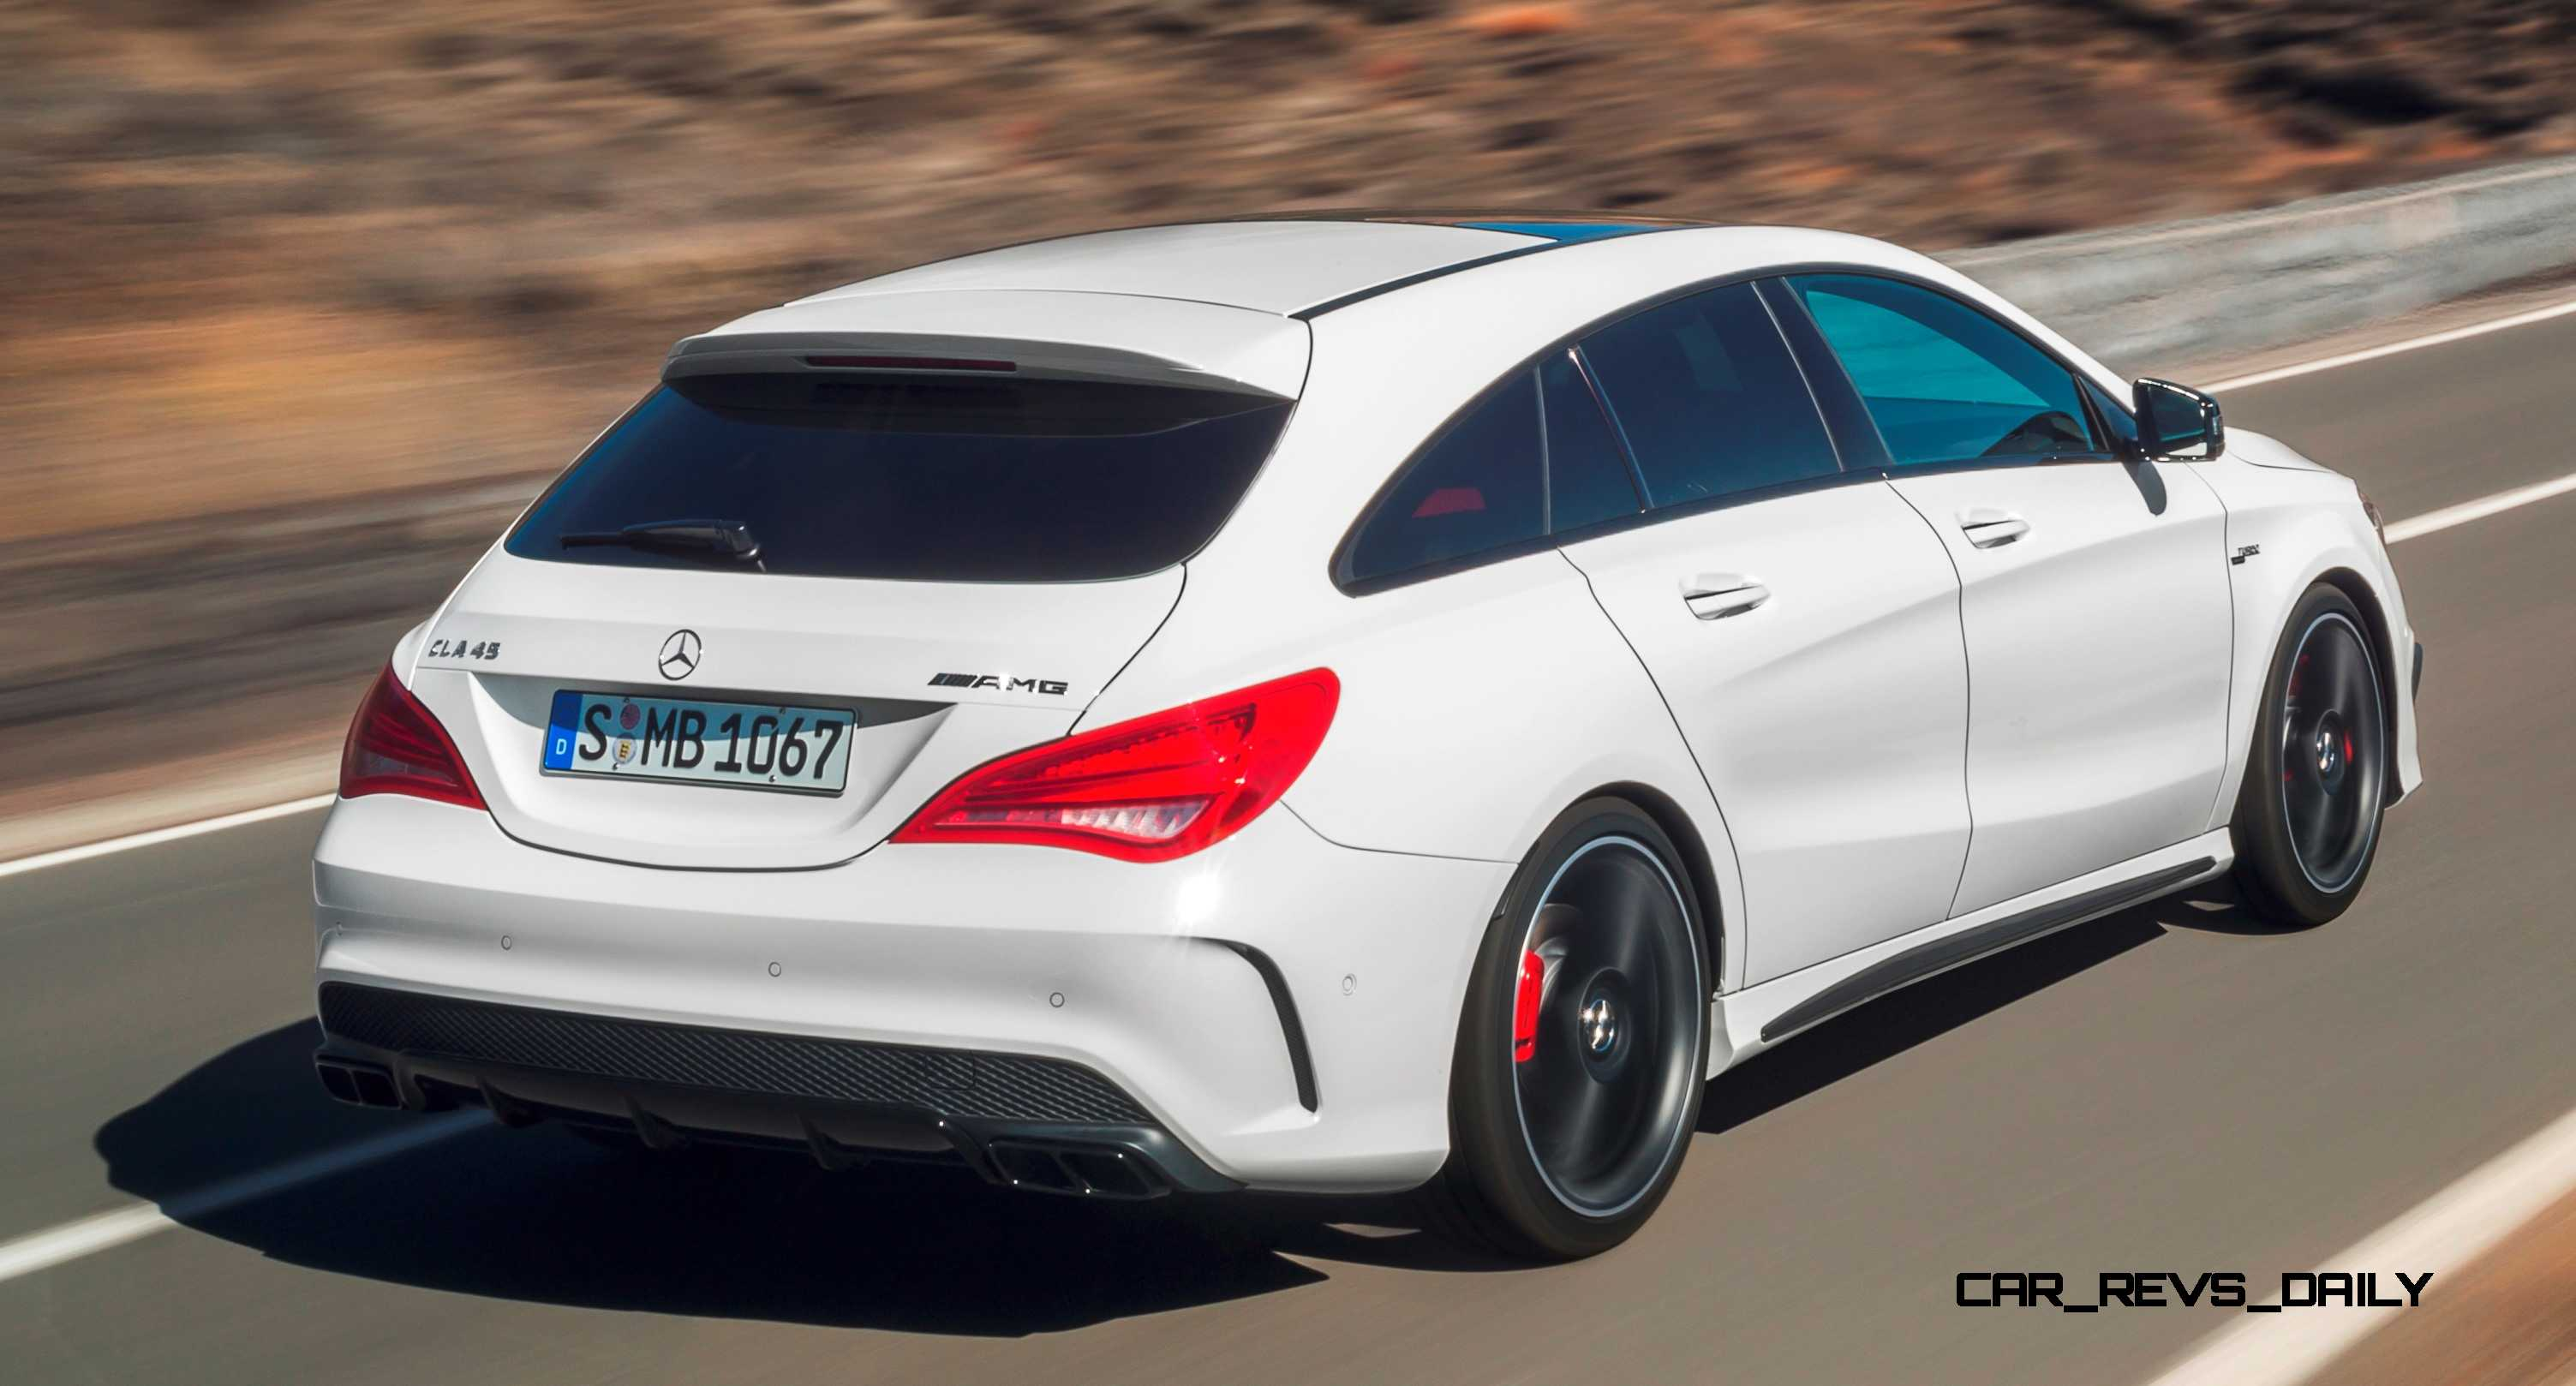 Mercedes cla 45 amg lease deals gift ftempo for Mercedes benz cla lease deals